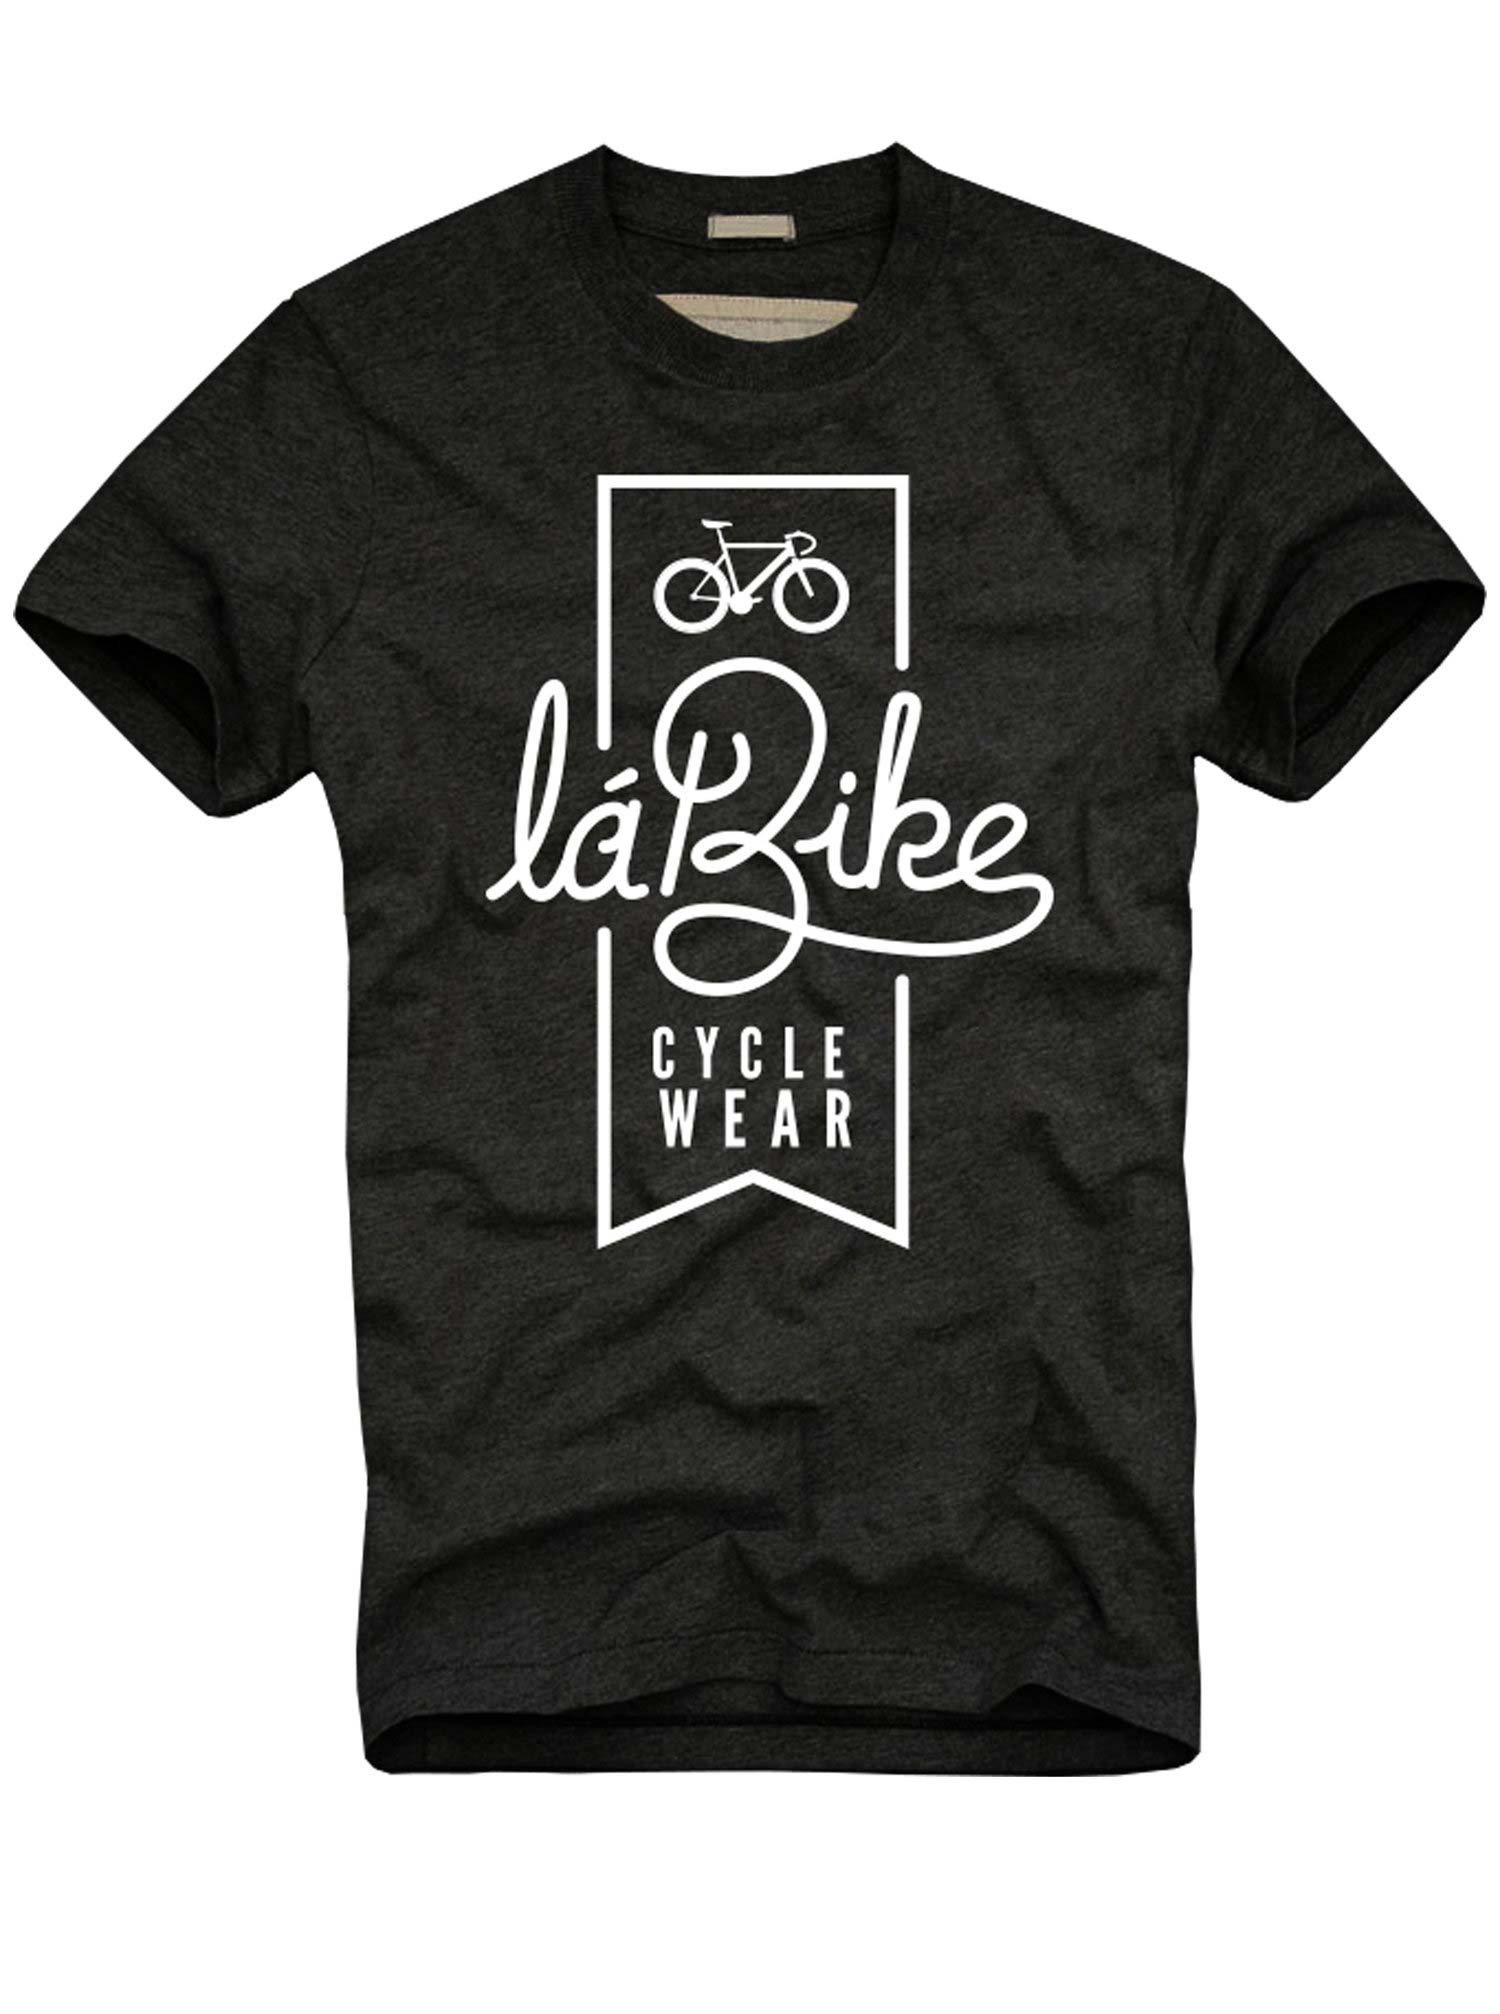 Apparel Design | LaBike Cycle Wear T-Shirt